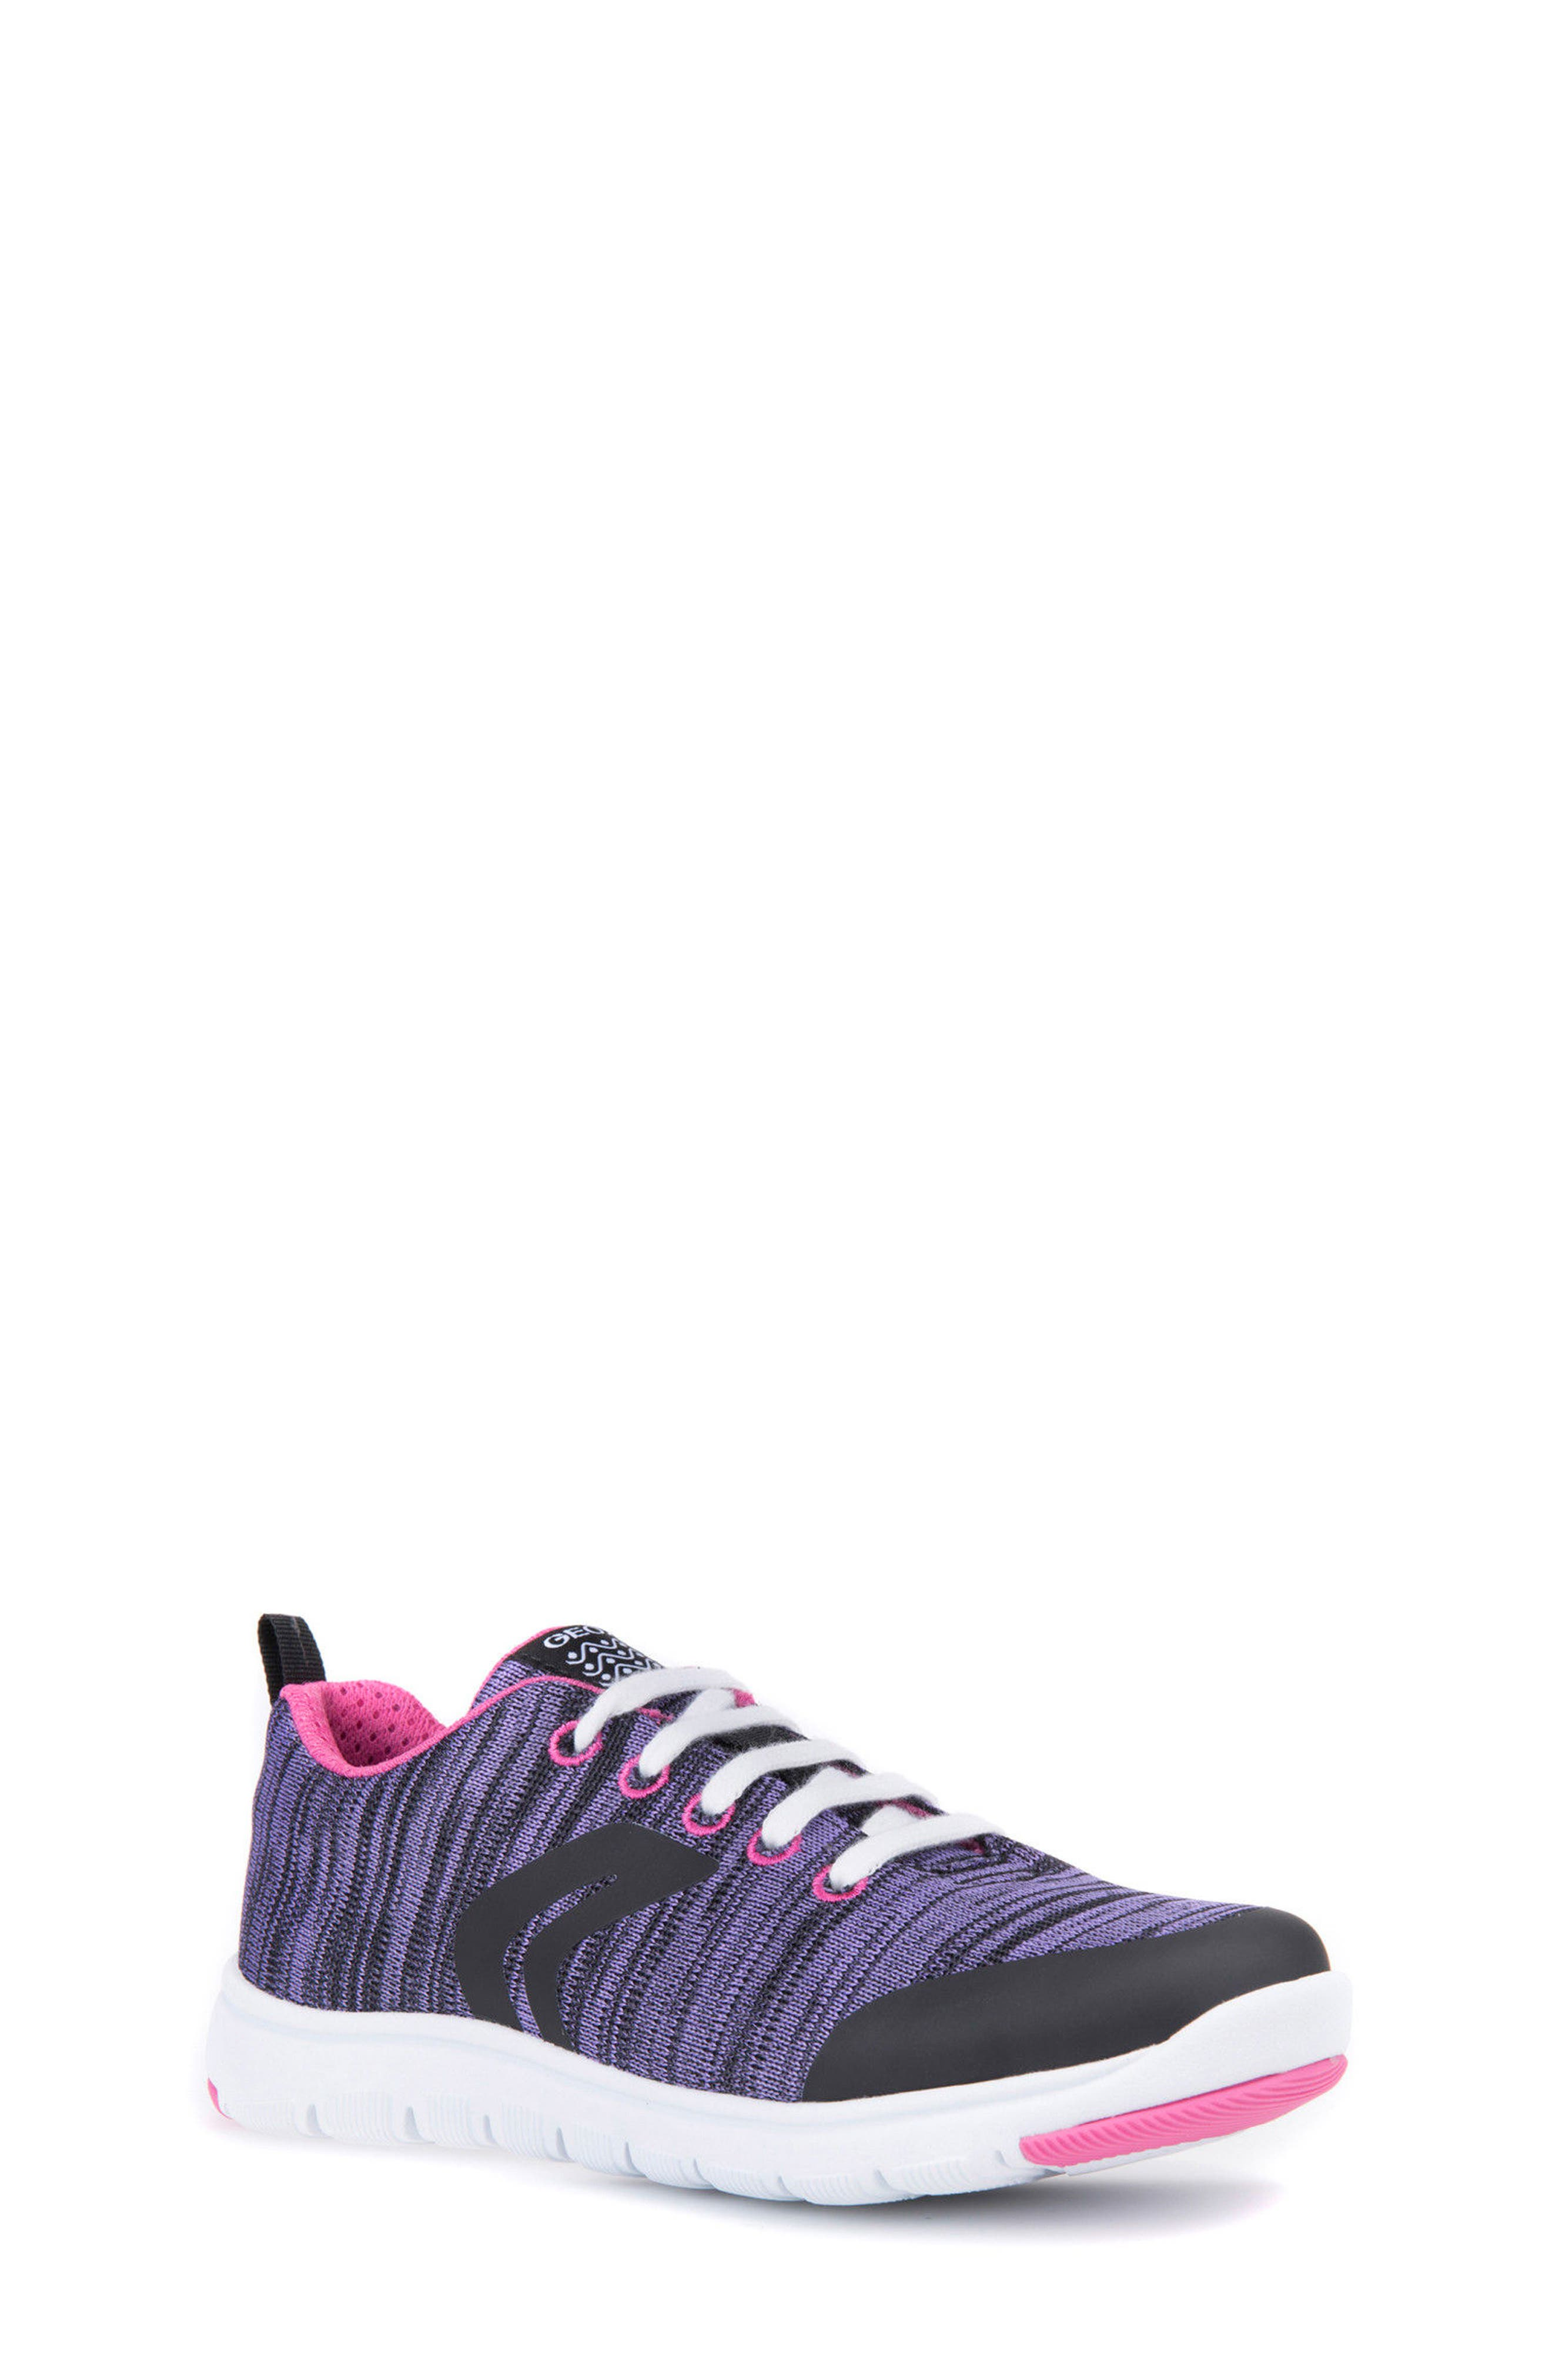 Xunday Performance Knit Low Top Sneaker,                             Main thumbnail 1, color,                             Lilac